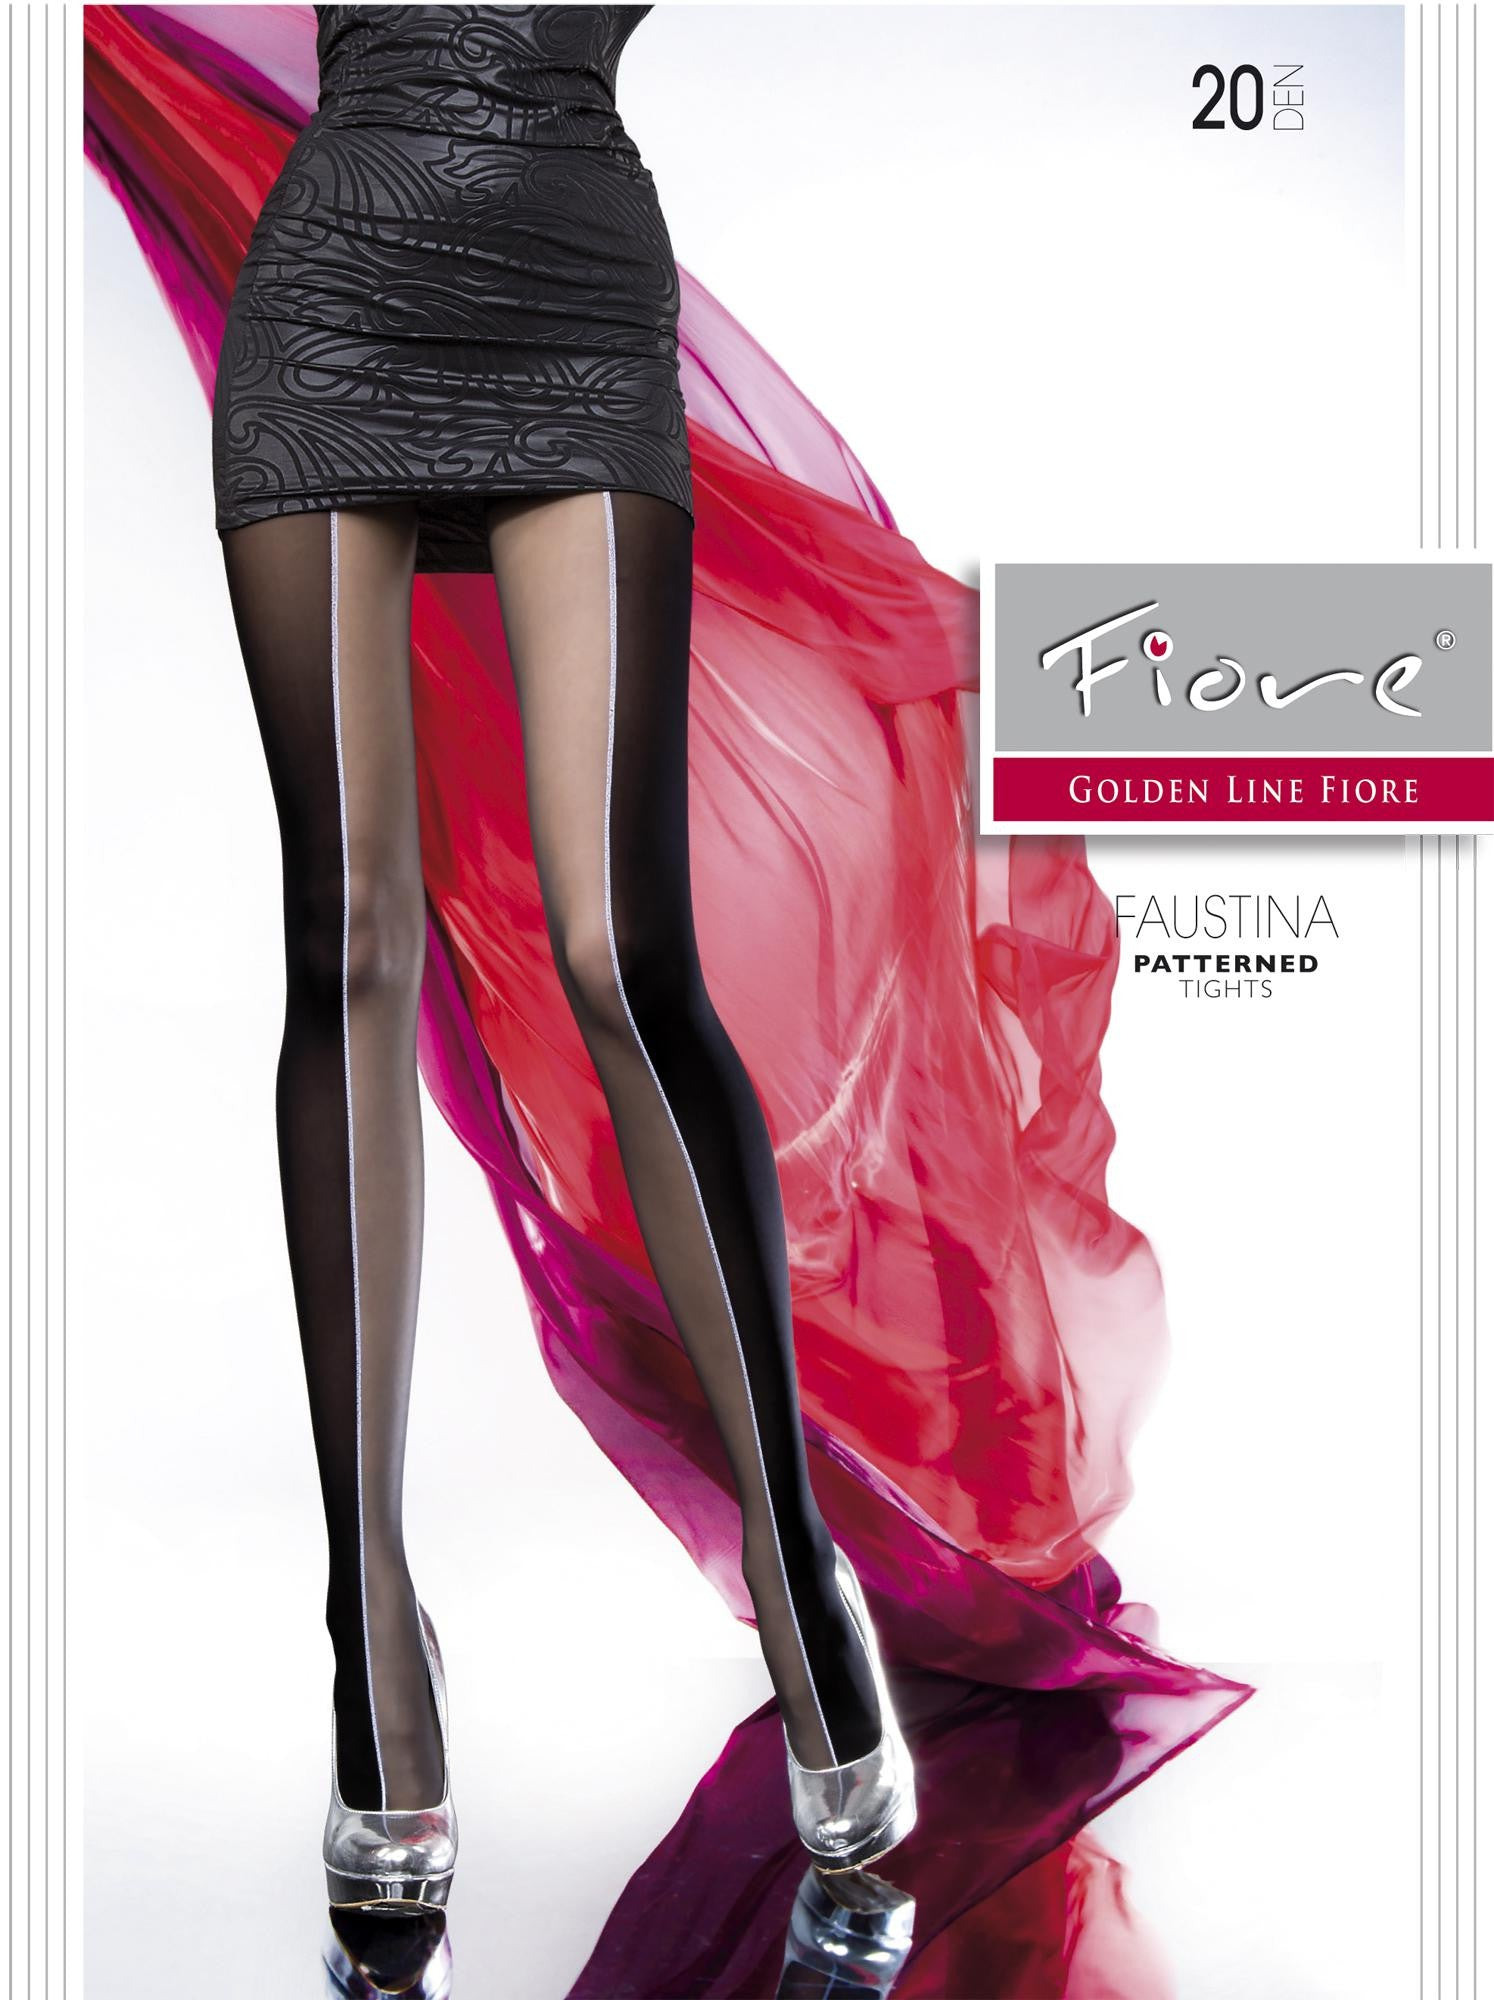 0e485c7ac3717 FAUSTINA Patterned Tights 20 den Fiore Hosiery Golden Line Color ...